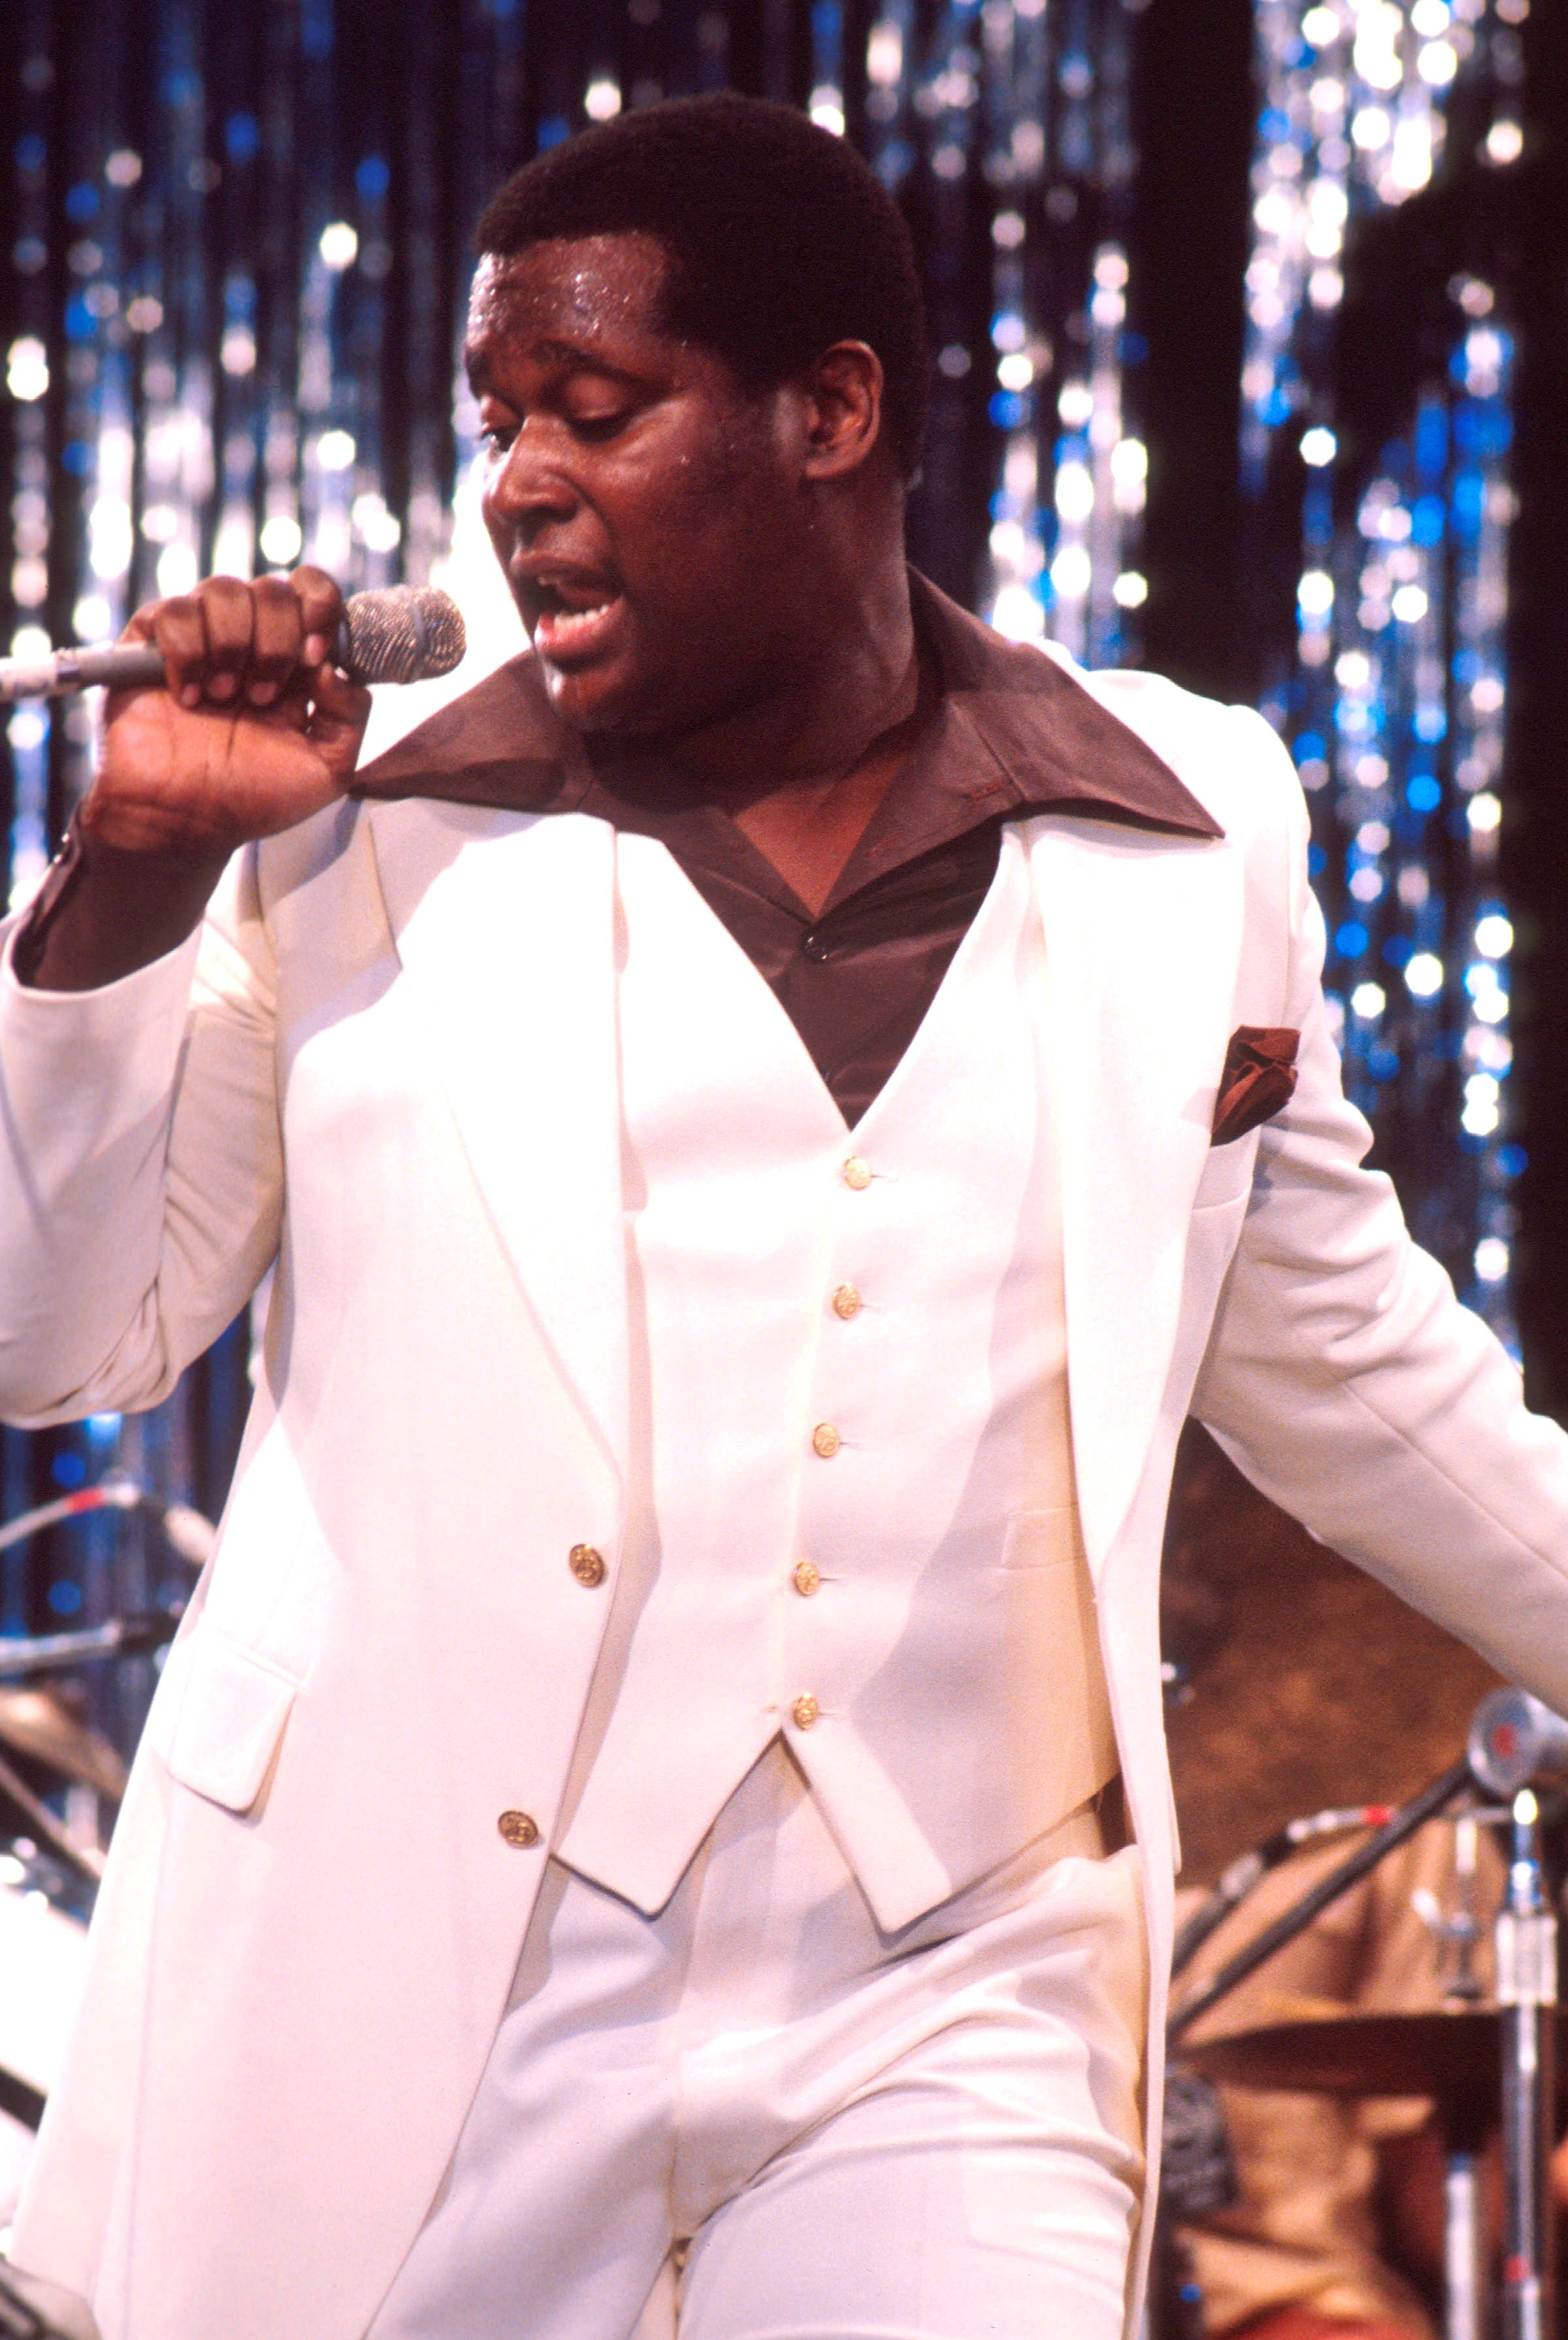 Luther Vandross performs on stage at Montreux Jazz Festival, 1977. Photo: GettyImages